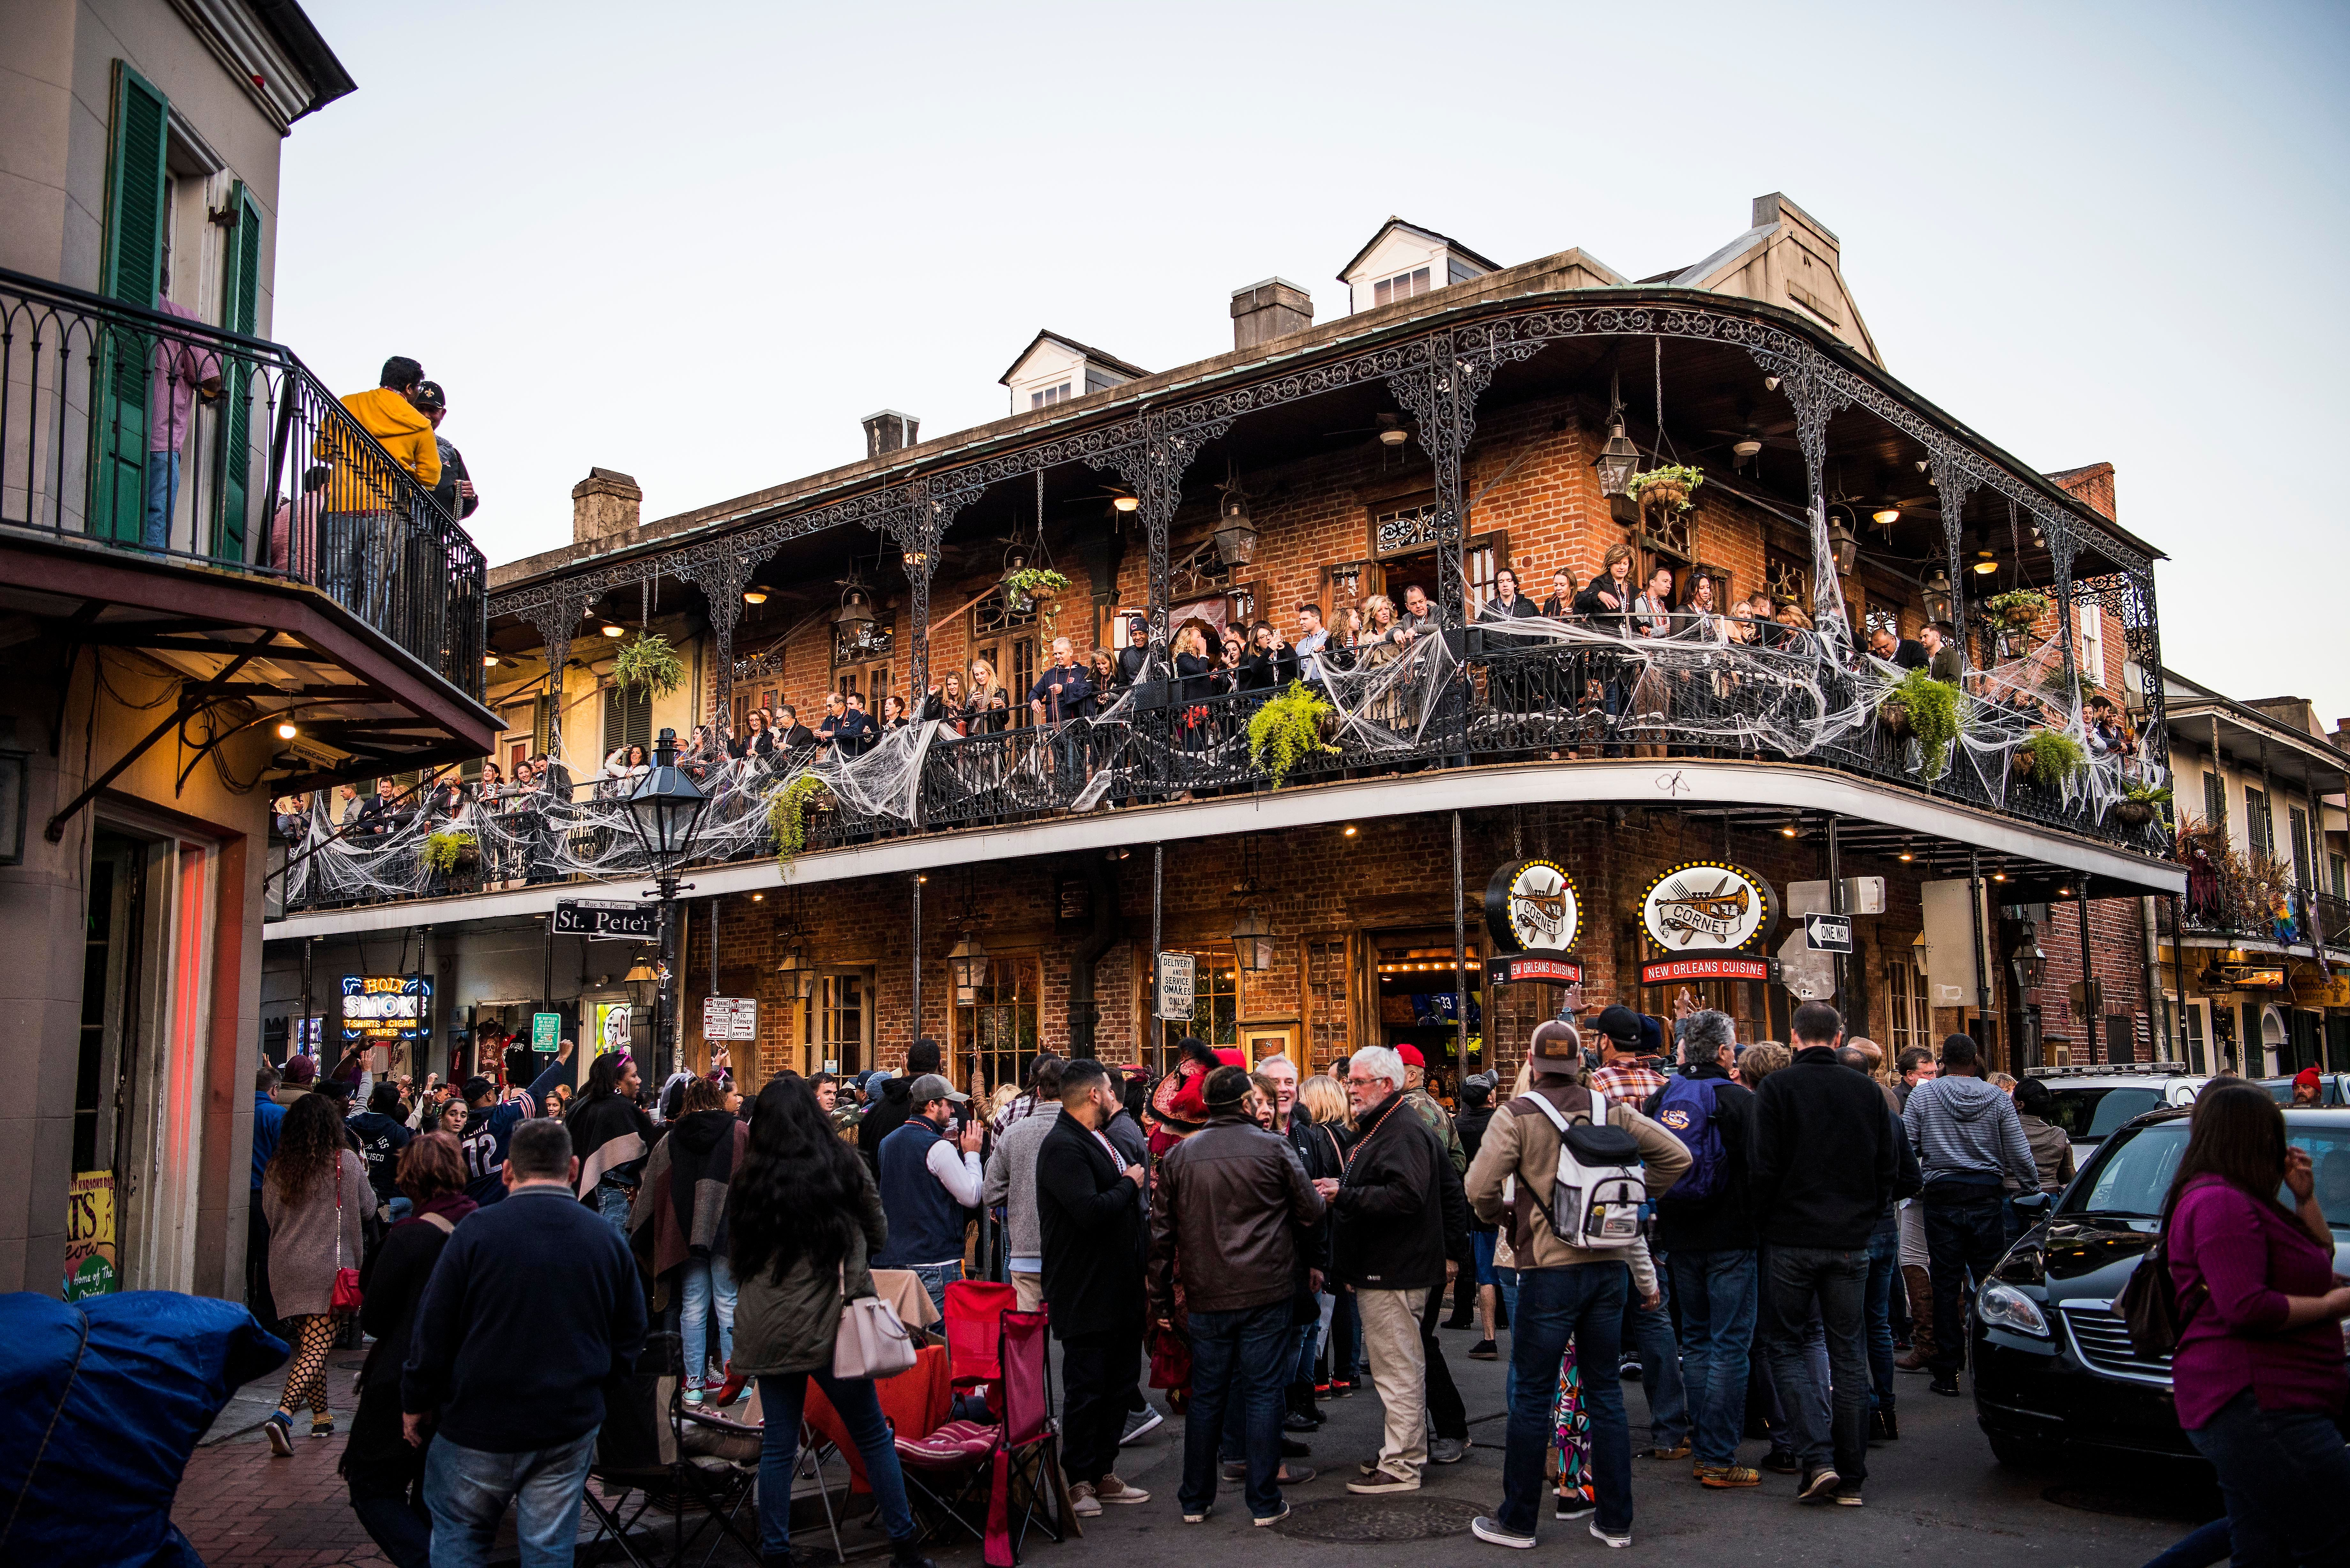 NEW ORLEANS, LA - OCTOBER 28: People walk aourd the French Quarter in New Orleans, Louisiana, on Oct. 28, 2017. (Photo by Damon Dahlen/HuffPost) *** Local Caption ***